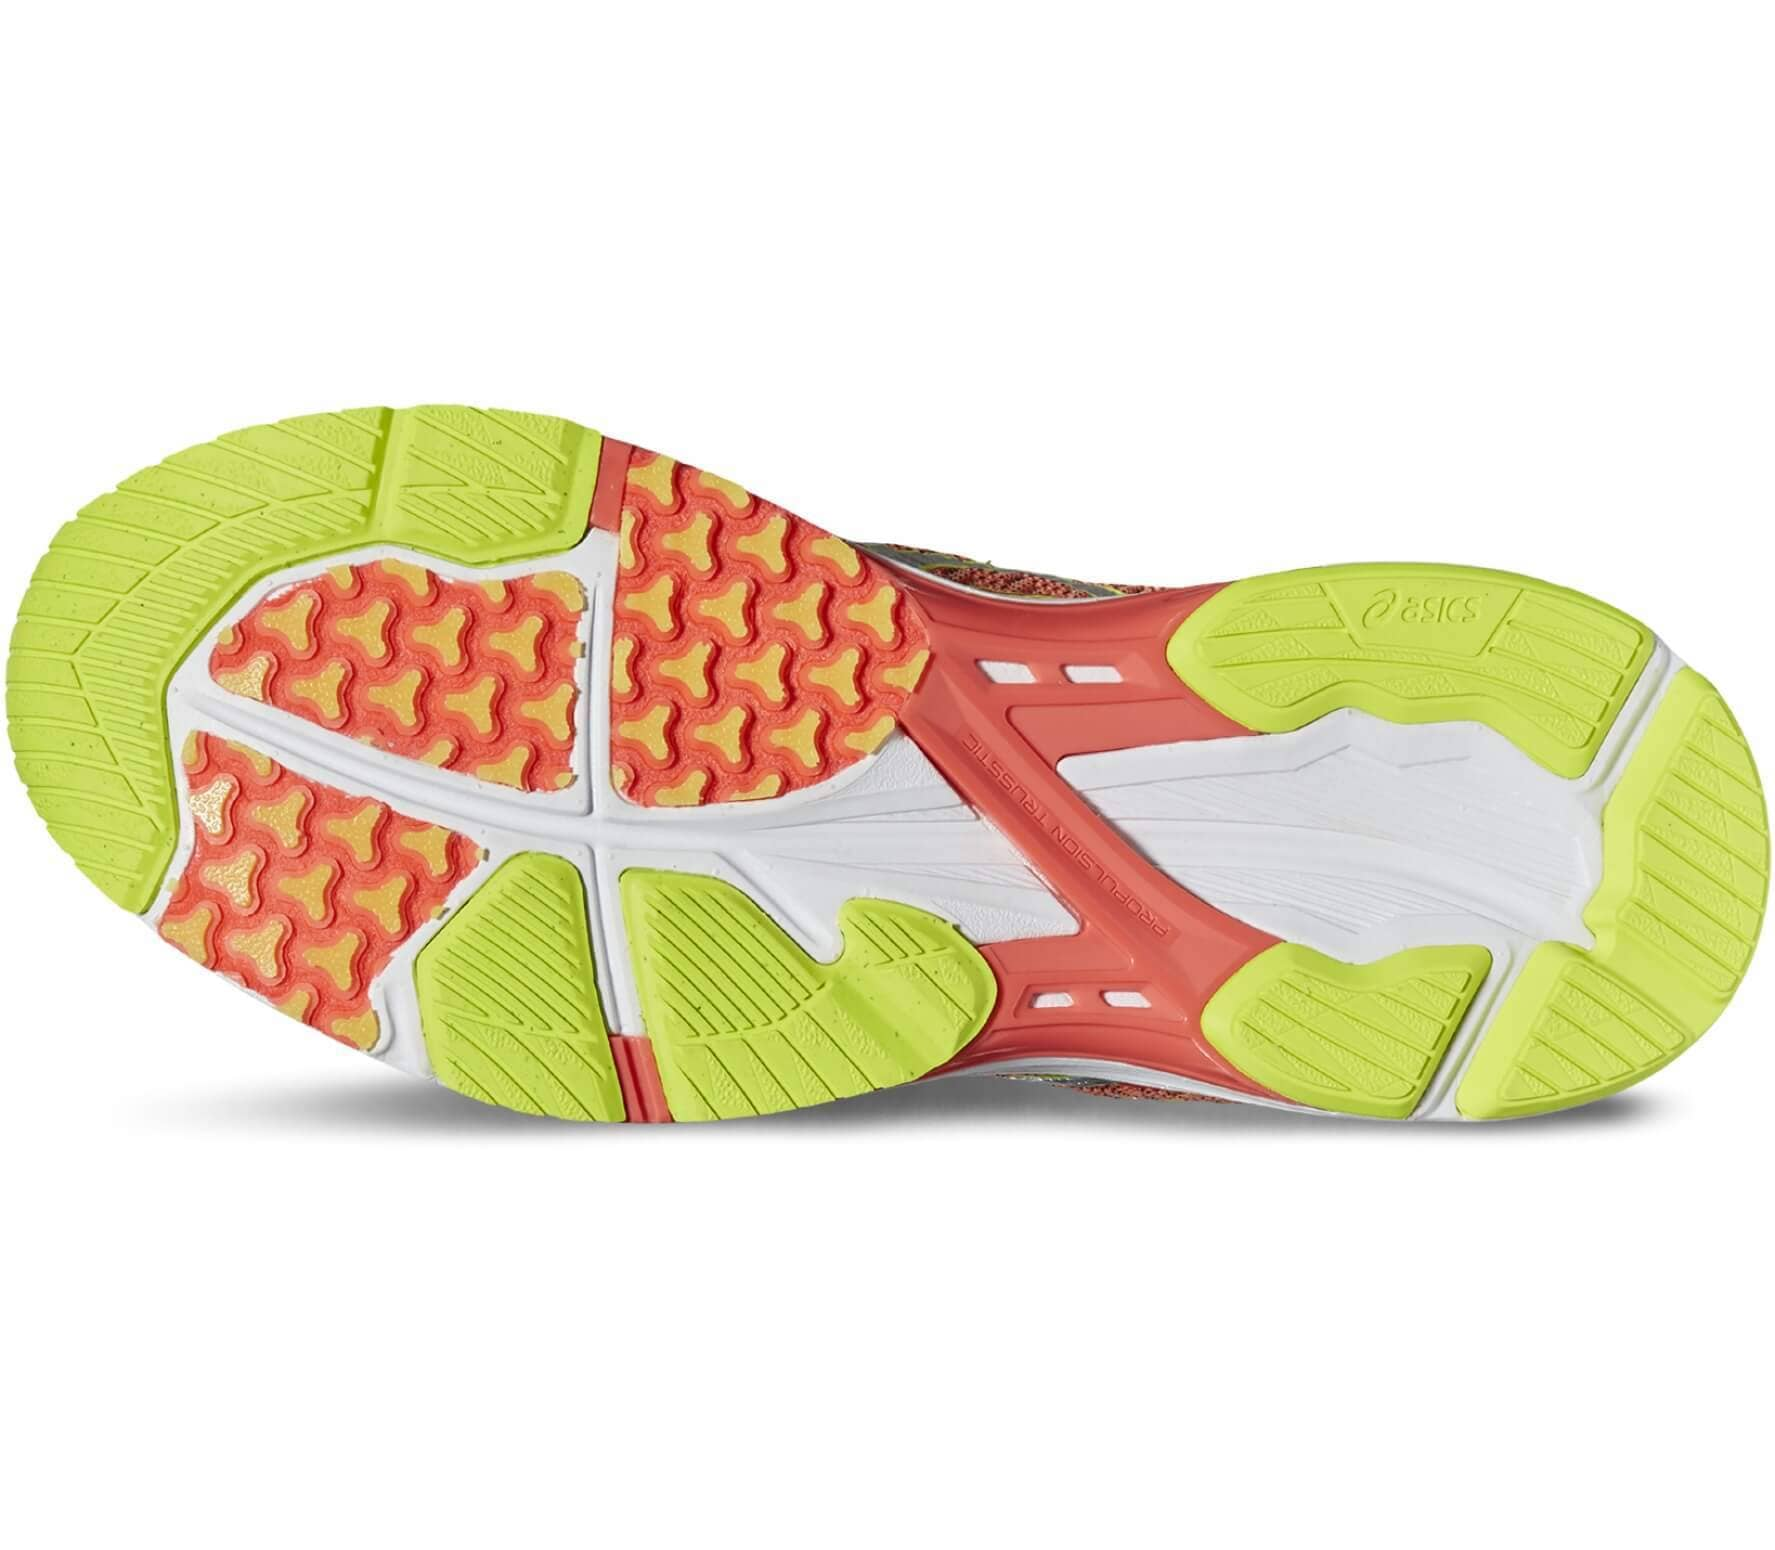 ASICS - Gel-DS Trainer 22 NC women's running shoes (orange/yellow)